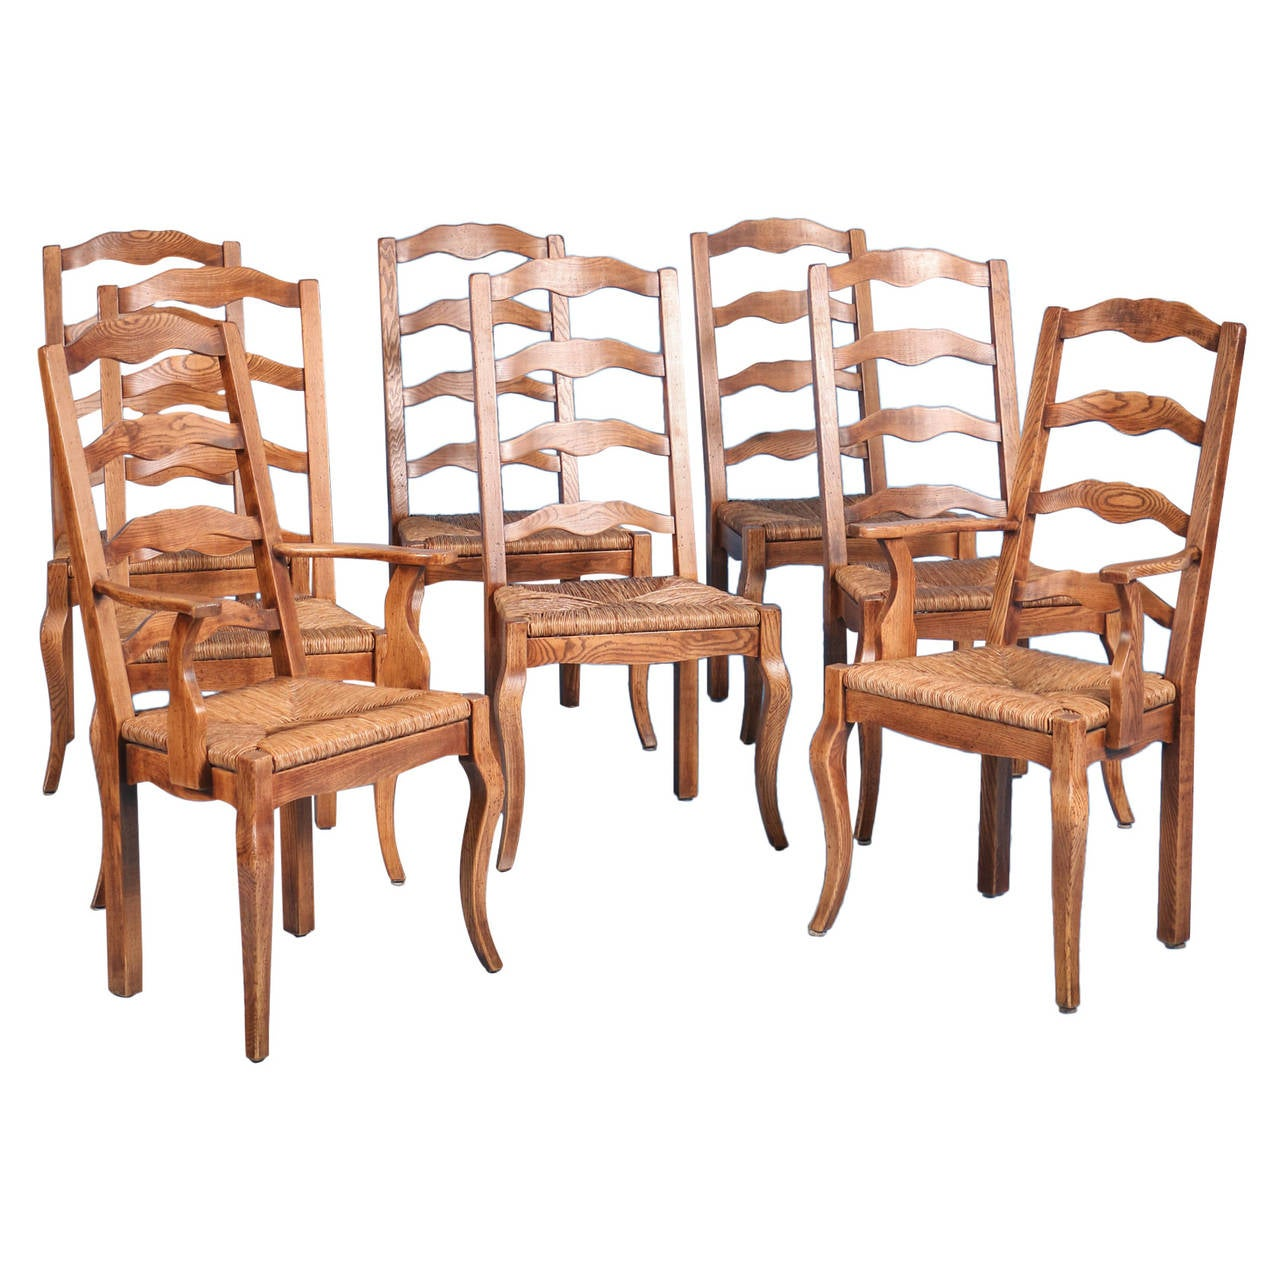 French Country Elm Wood and Rush Seat Dining Chairs Set